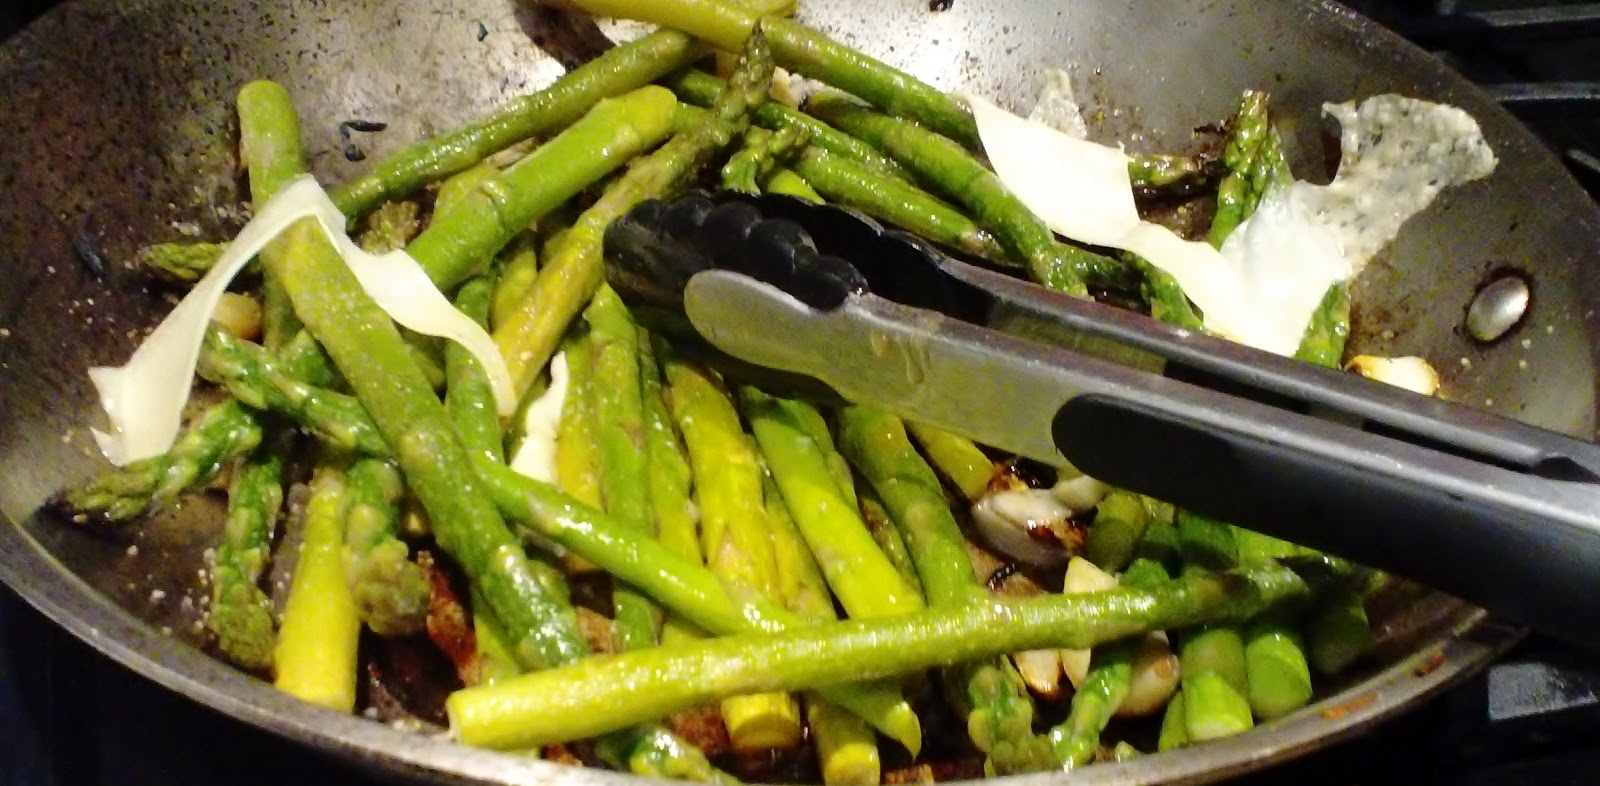 ... and the Vegetarian: Pan-Roasted Asparagus with Lemon and Garlic